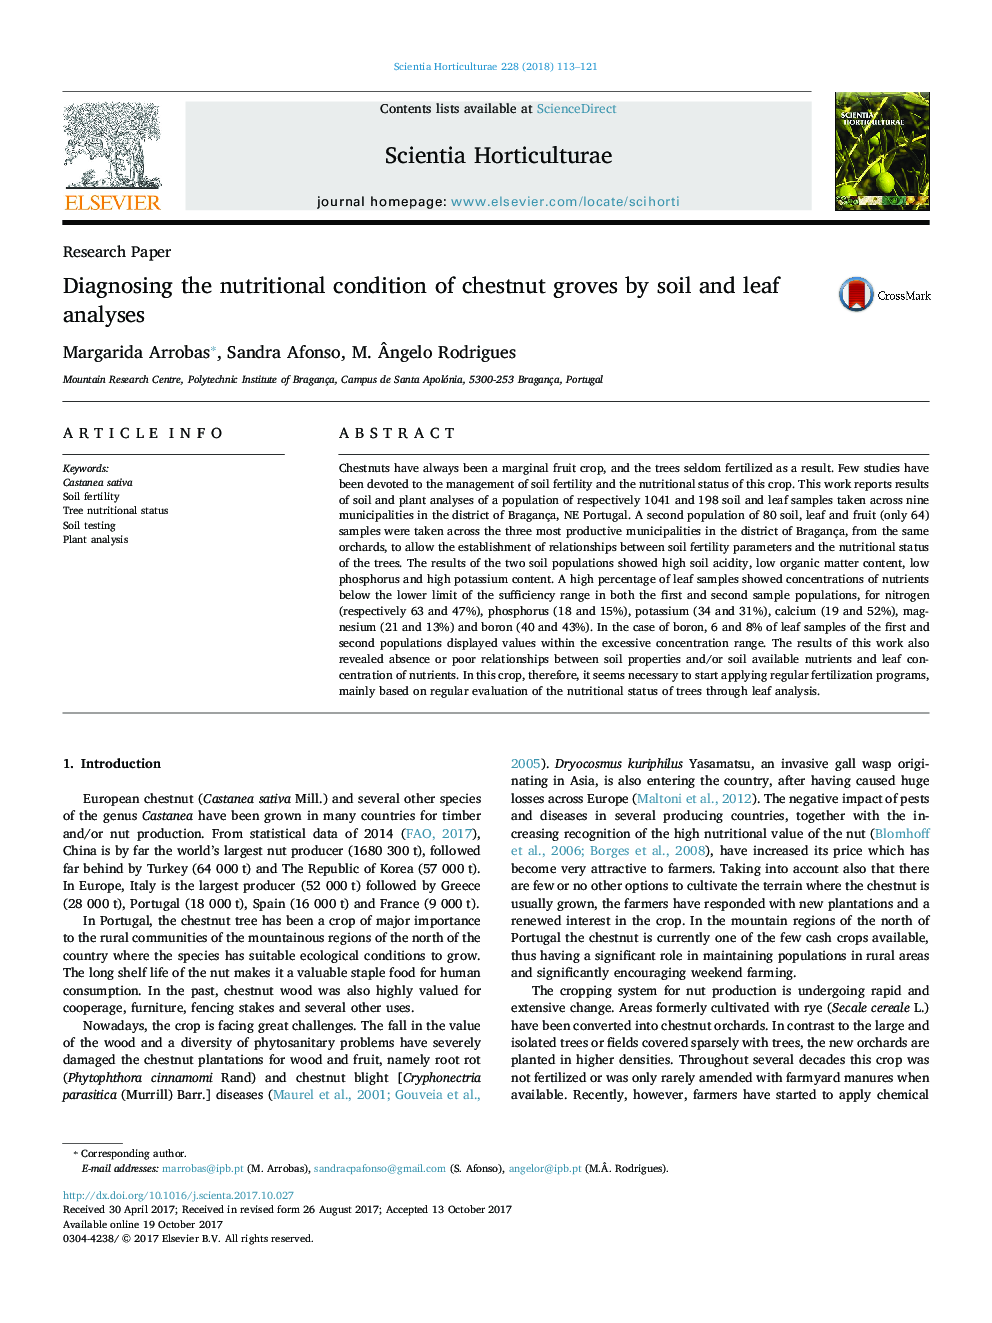 Research PaperDiagnosing the nutritional condition of chestnut groves by soil and leaf analyses